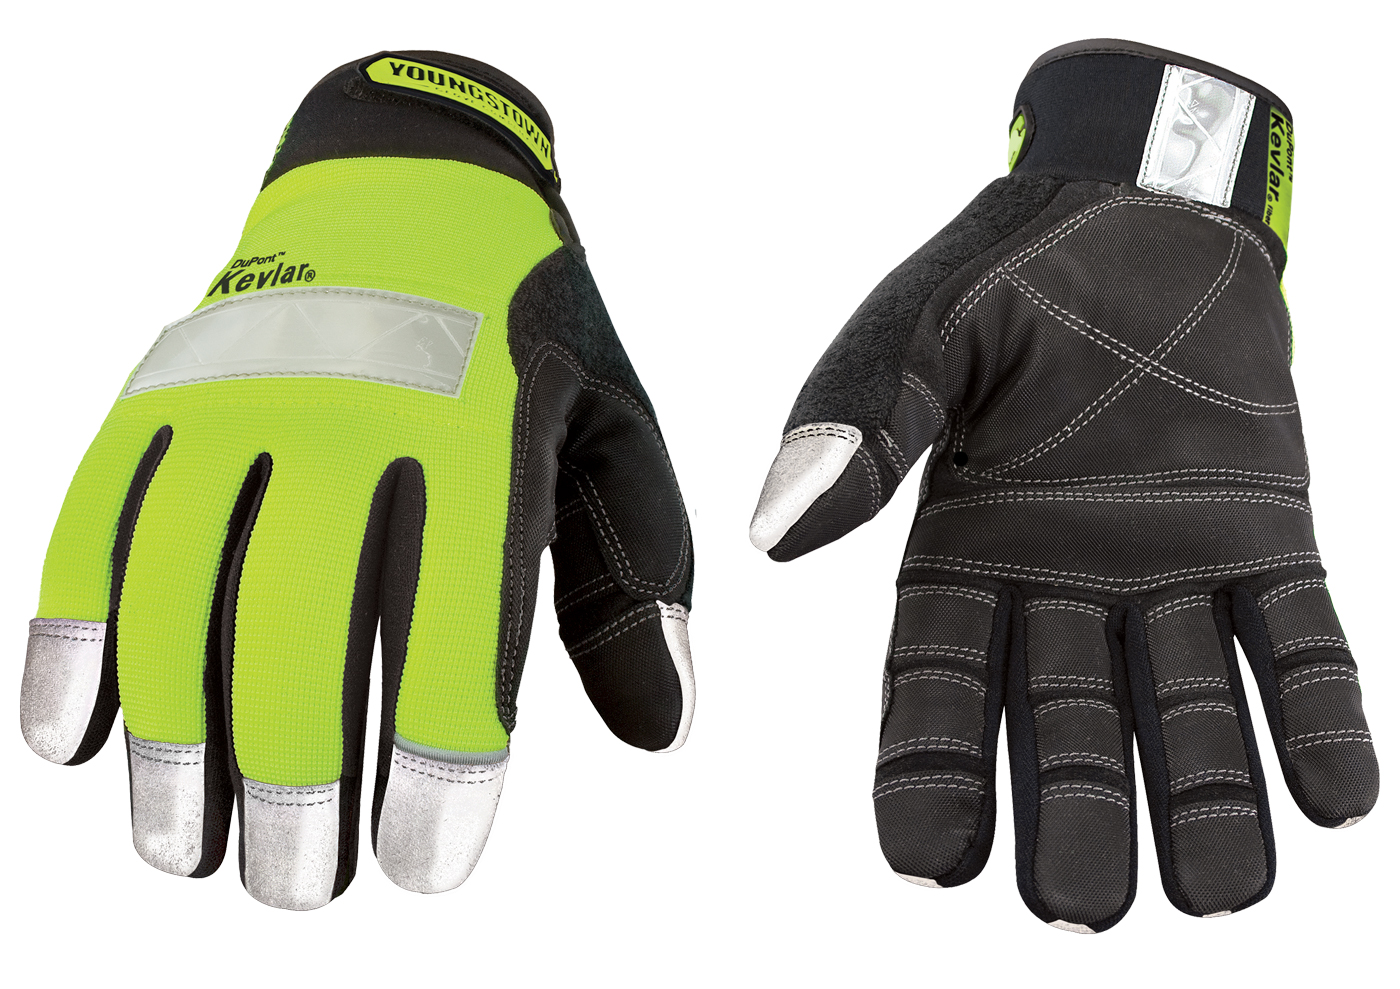 Youngstown Glove Safety Lime Glove Lined with Kevlar Large